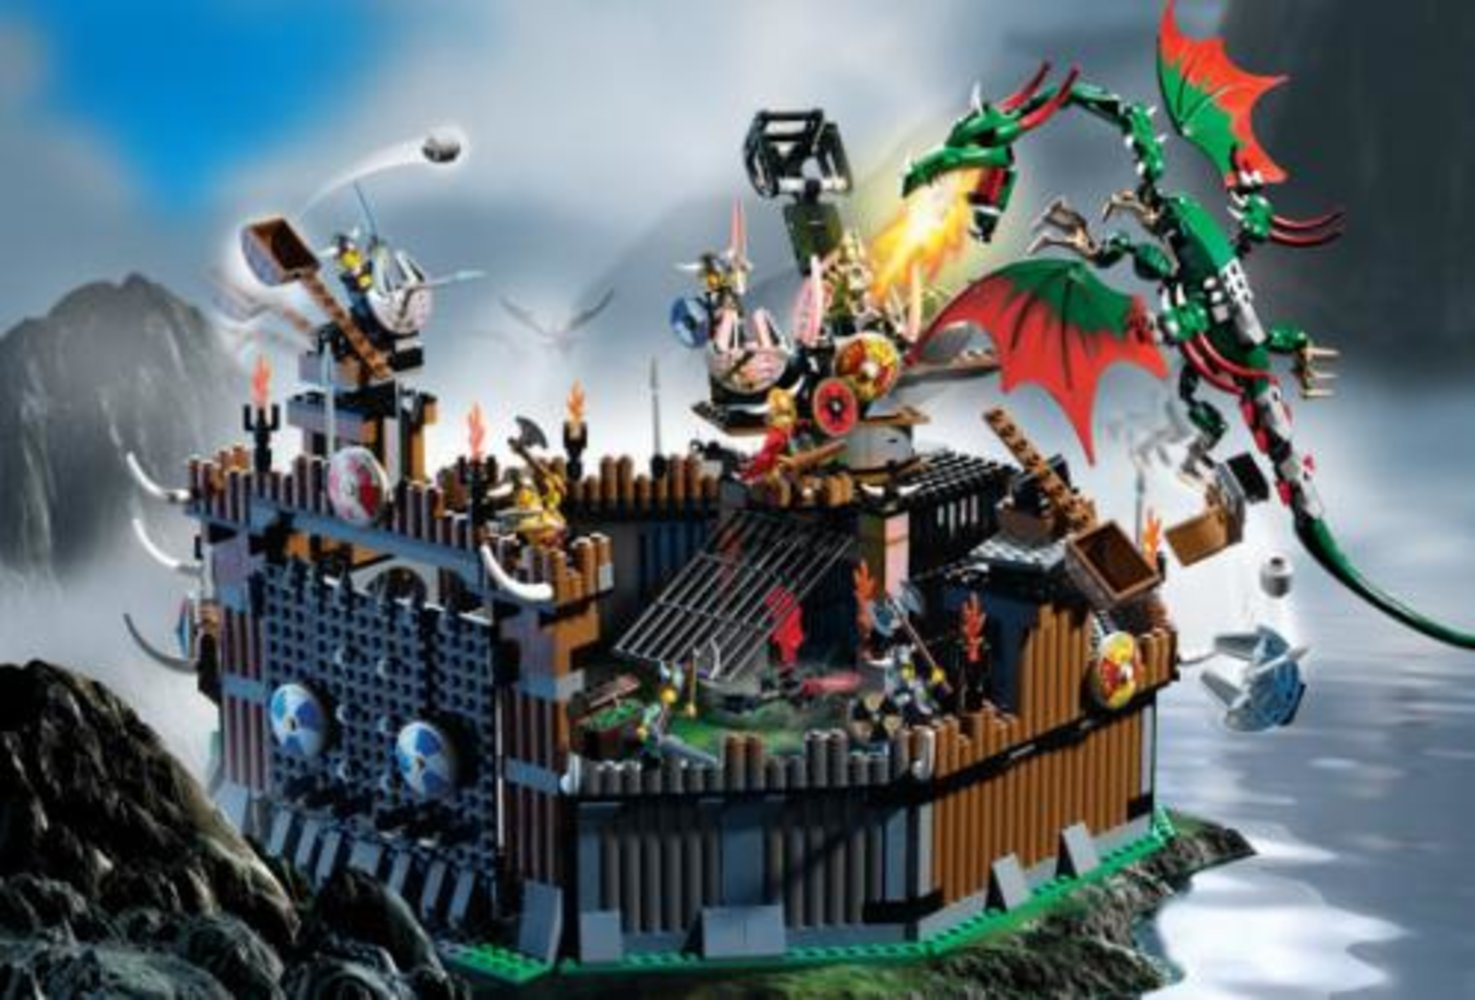 Viking Fortress against the Fafnir Dragon